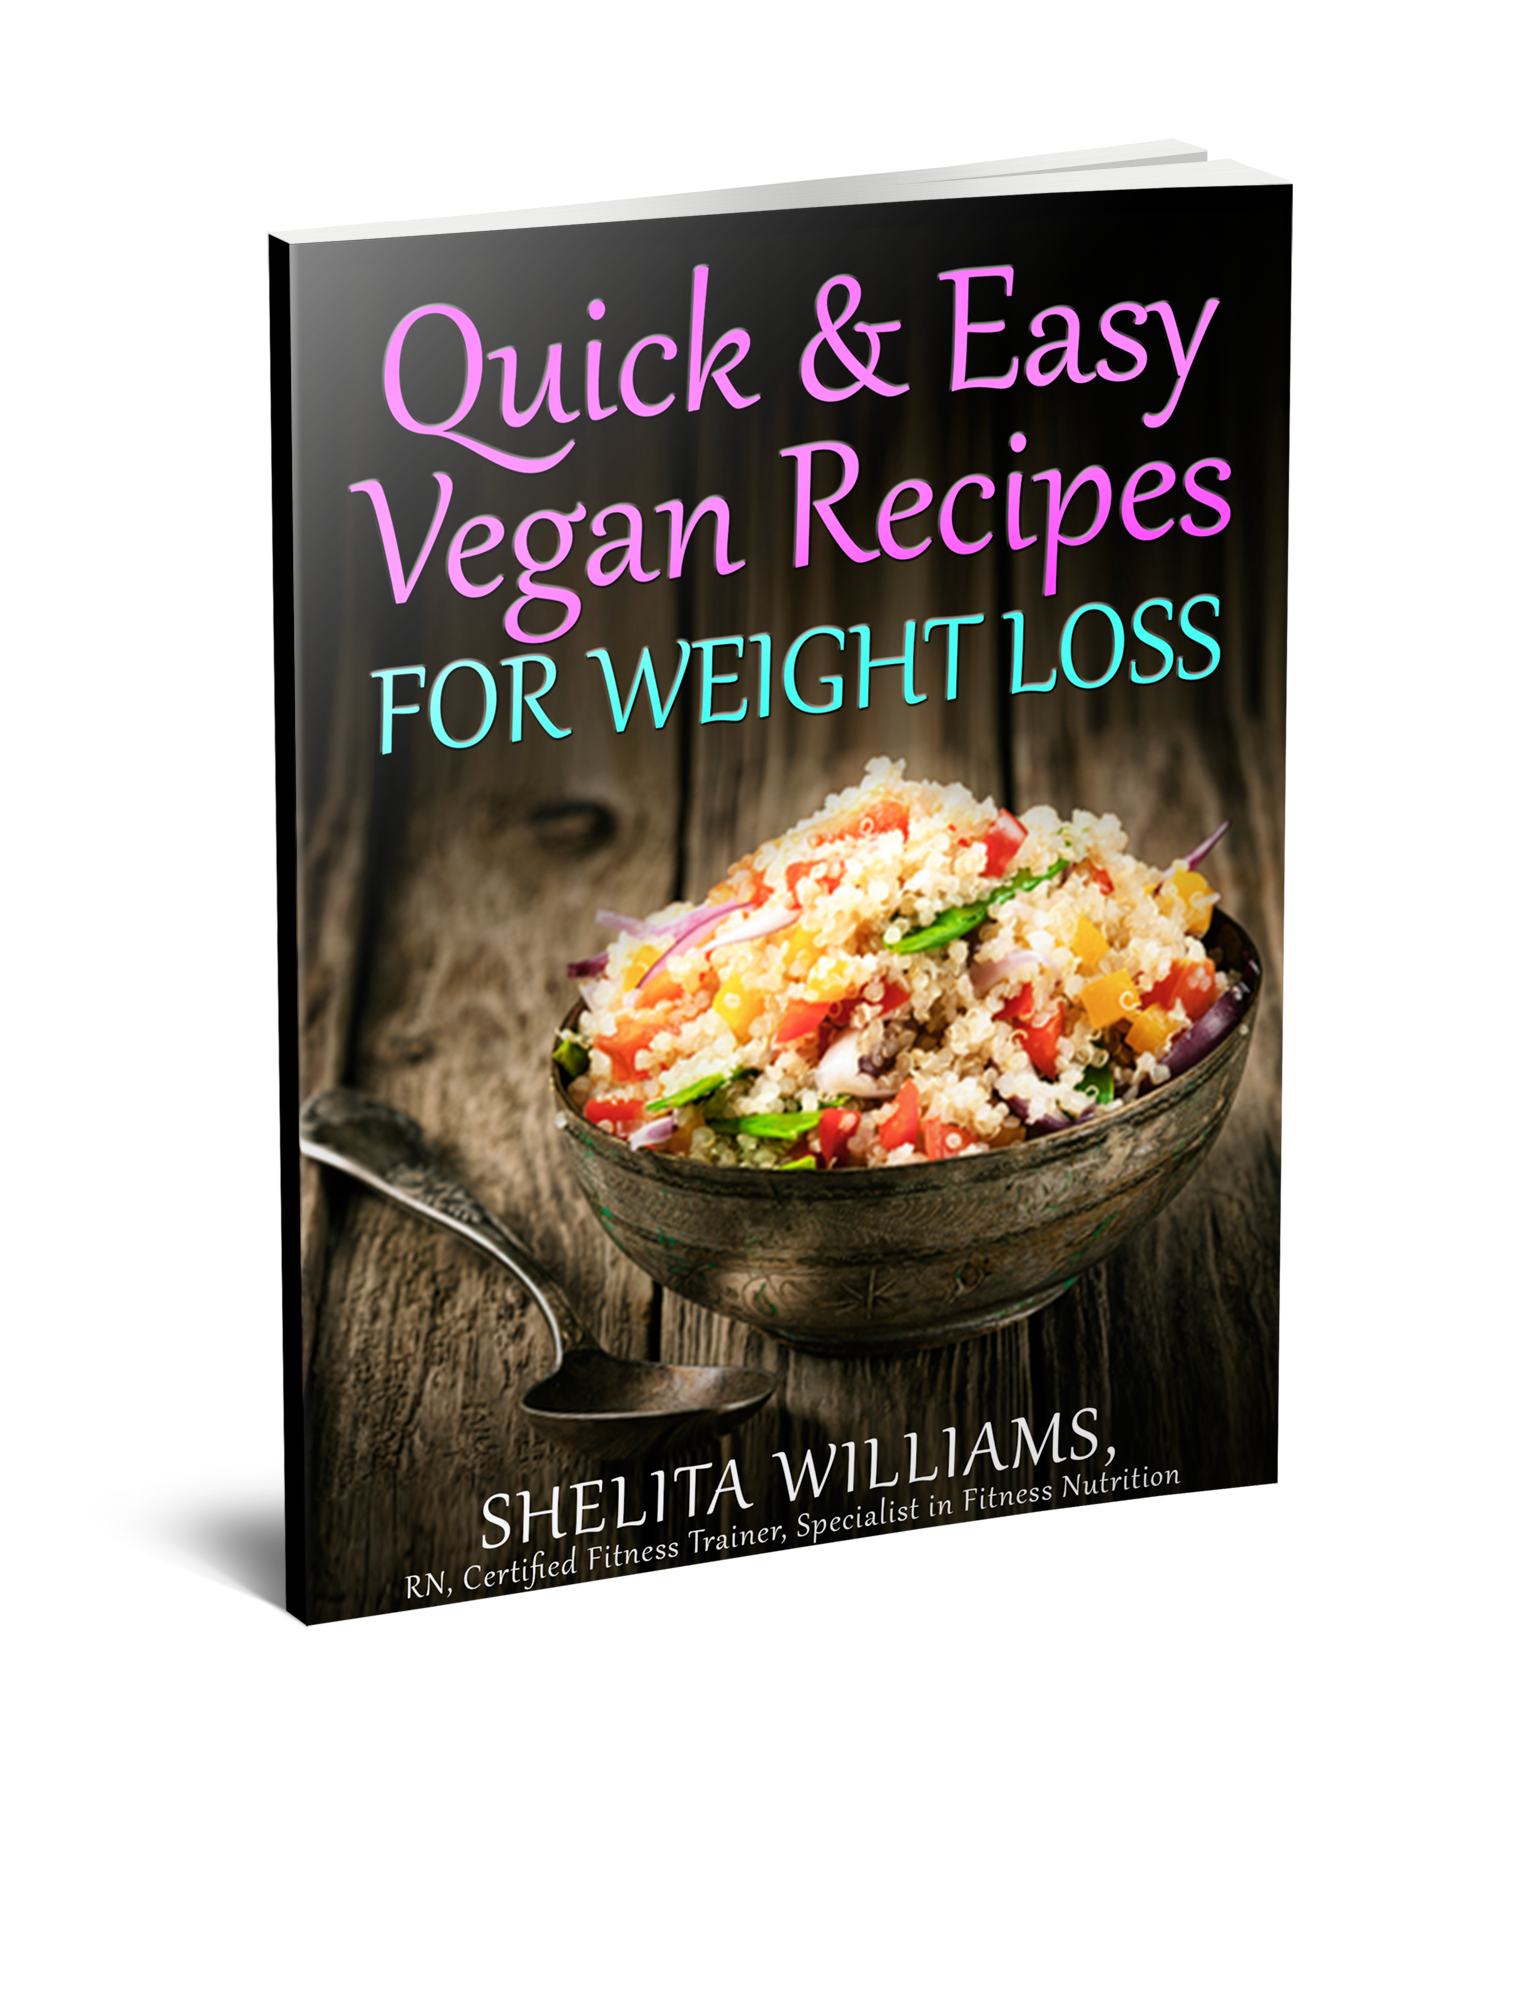 Quick & Easy Vegan Recipes for Weight Loss! One Time Offer (Digital Product)